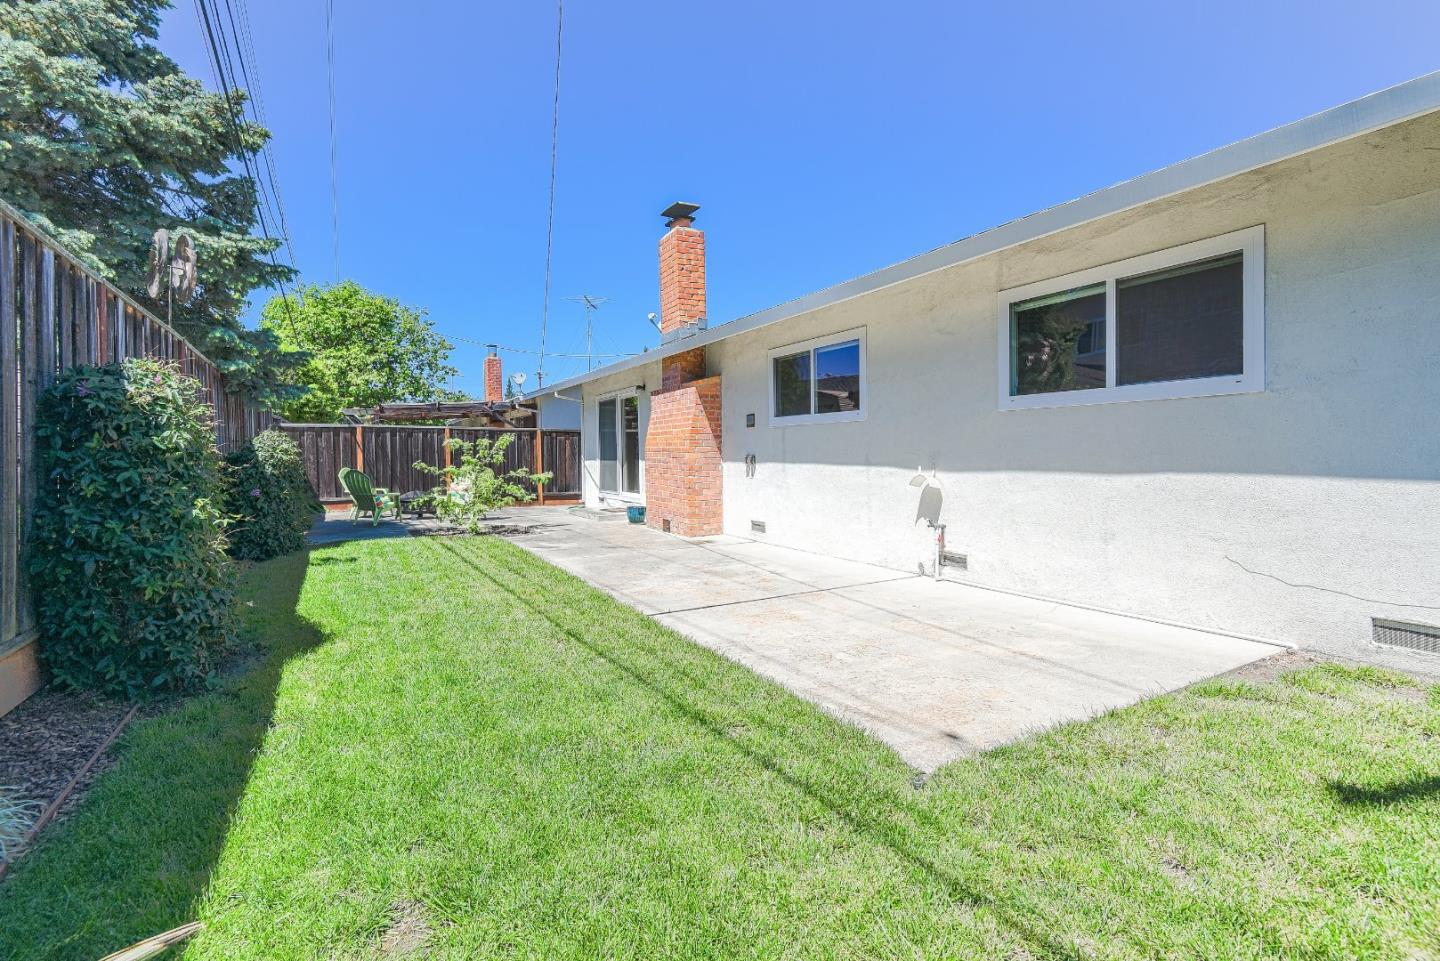 Additional photo for property listing at 1136 Vasquez Ave  SUNNYVALE, CALIFORNIA 94086